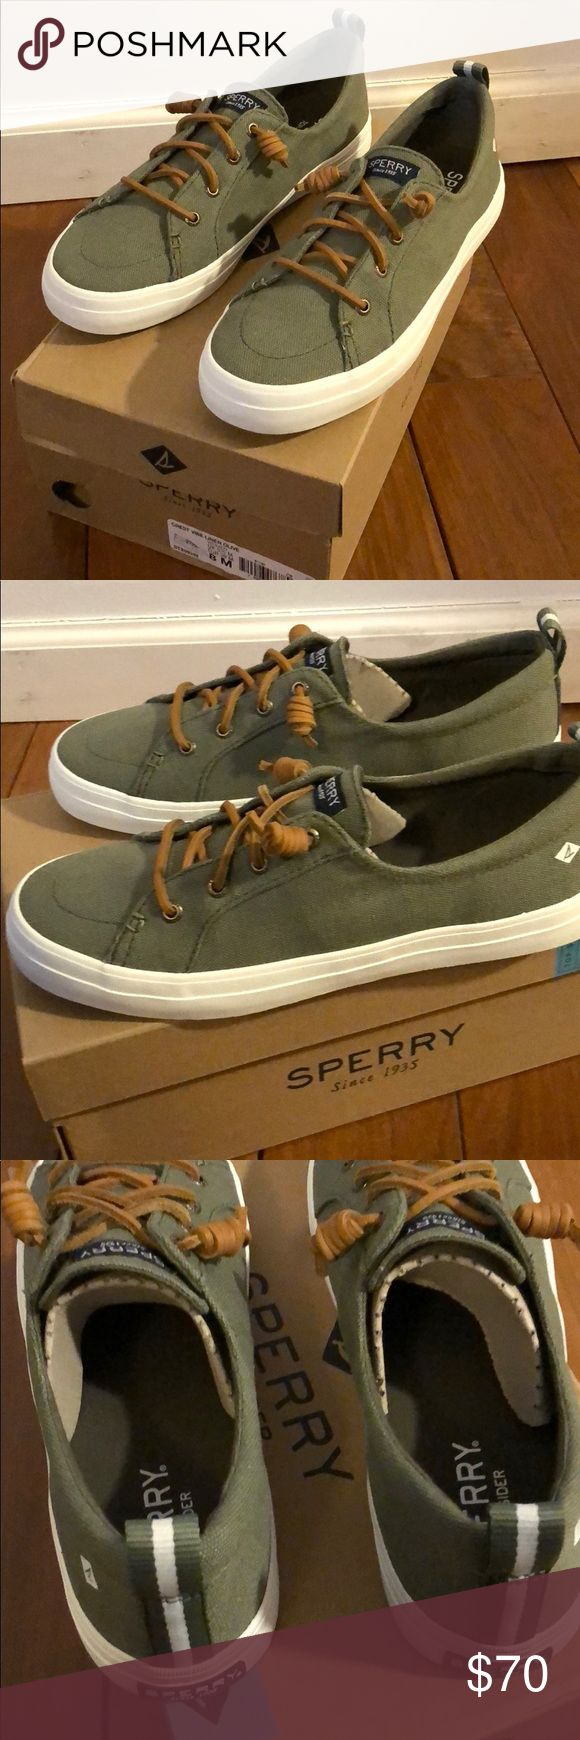 Brand New Women's Sperry TopSiders Women's Sperry Topsider Sneaker size 8. Olive green with brown leather laces. Never worn! New in box. Sperry Shoes Flats & Loafers